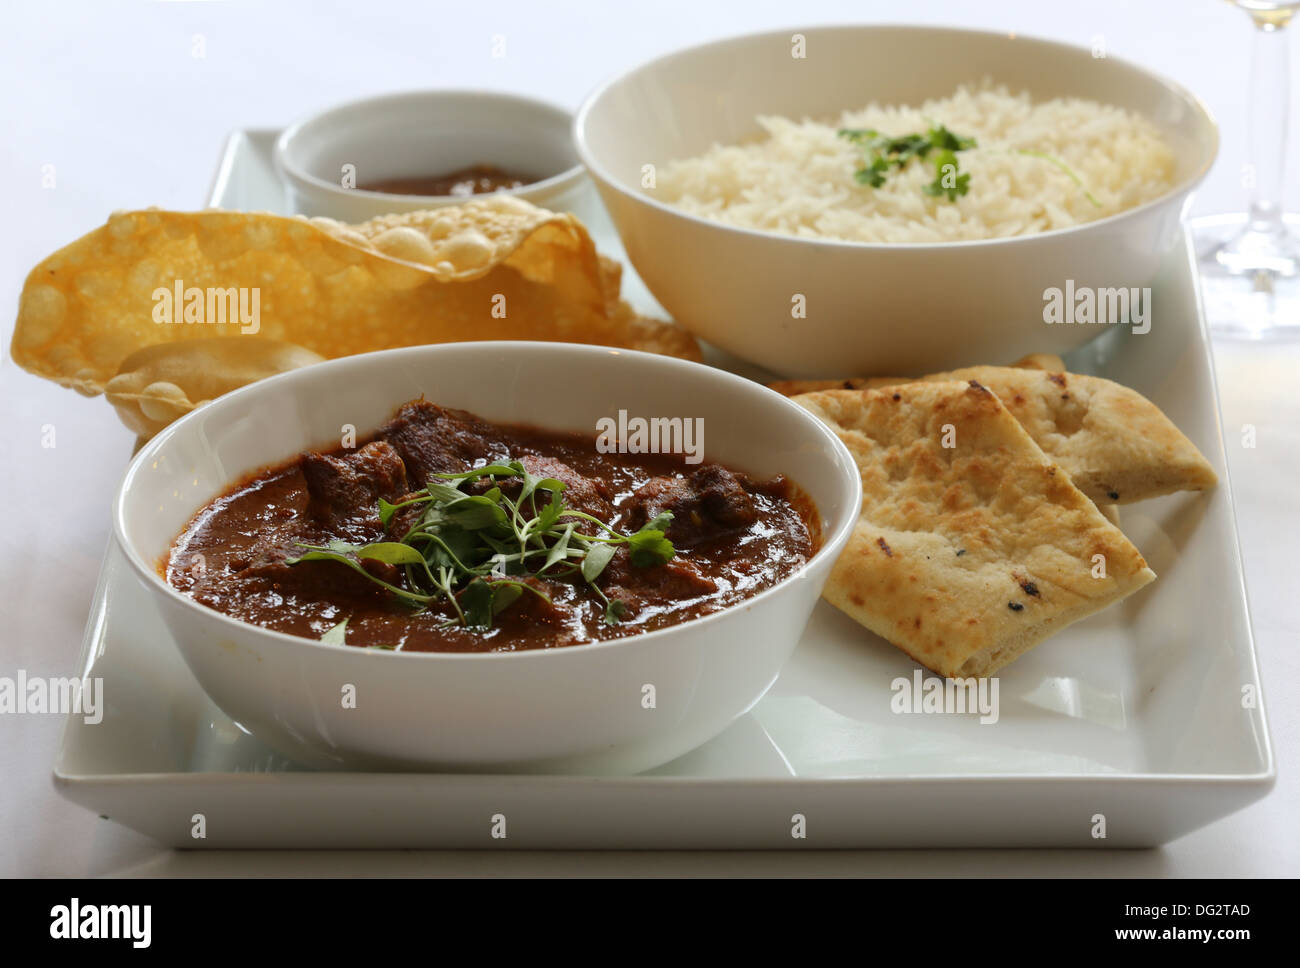 Chicken curry with rice and naan bread - Stock Image